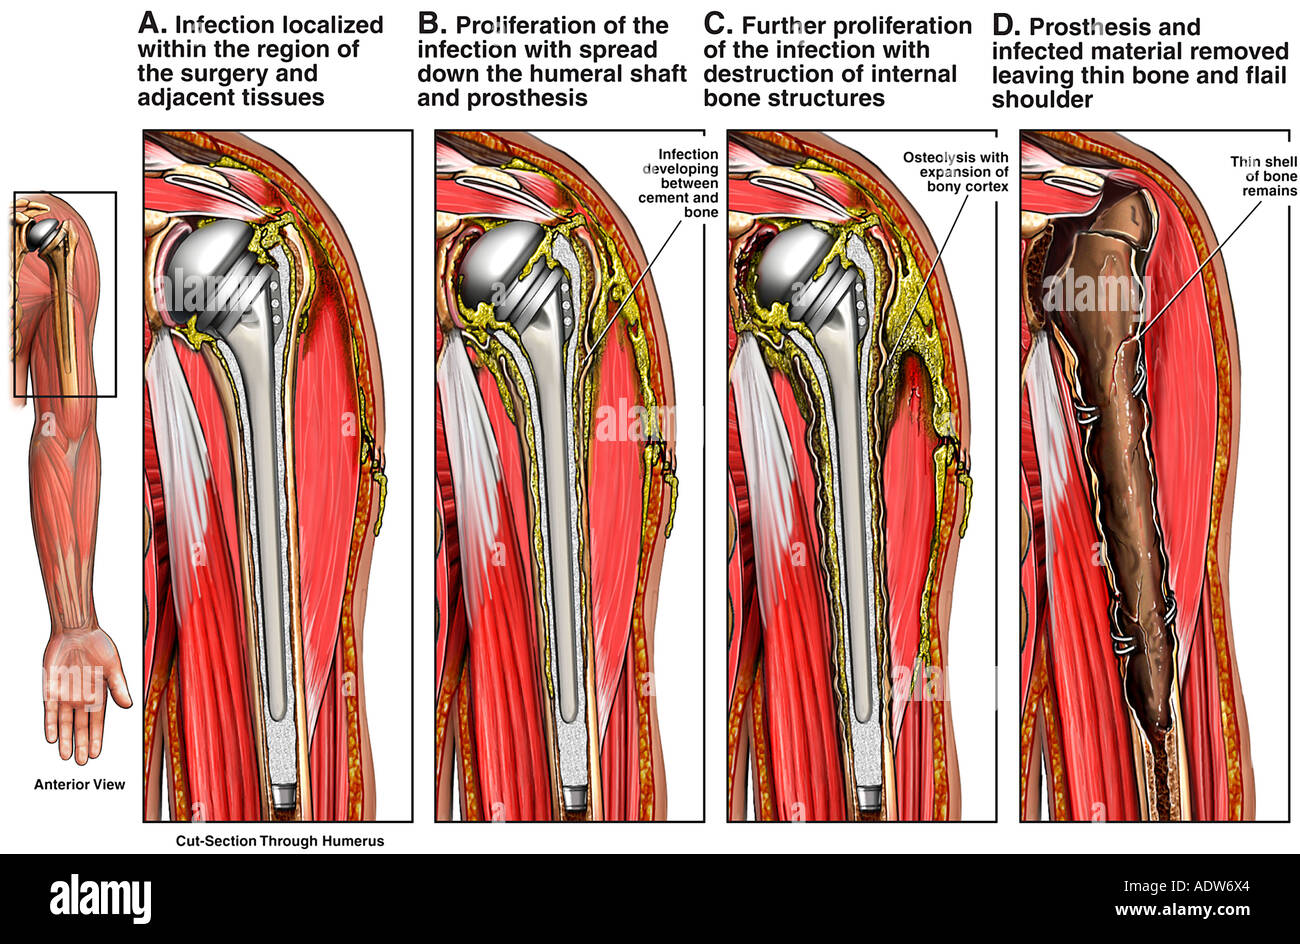 Possible Post-operative Complications of a Total Shoulder Replacement - Stock Image